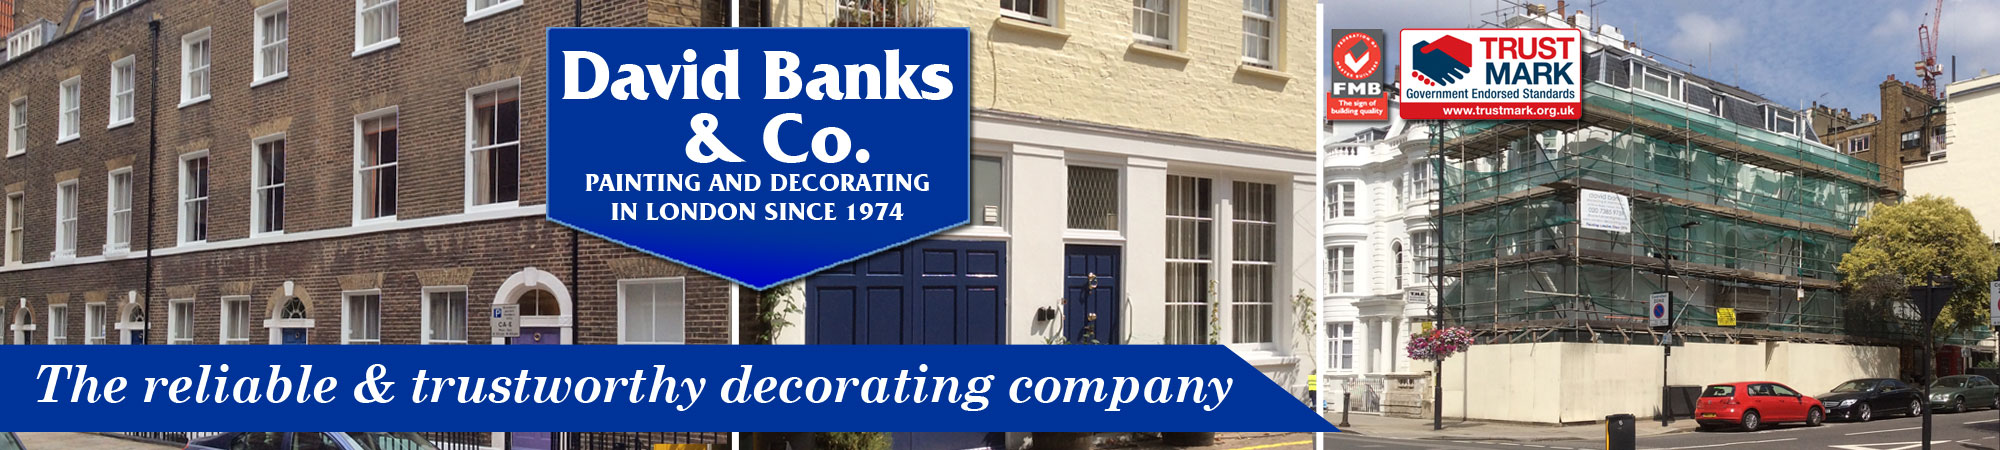 David Banks Painting & Decorating